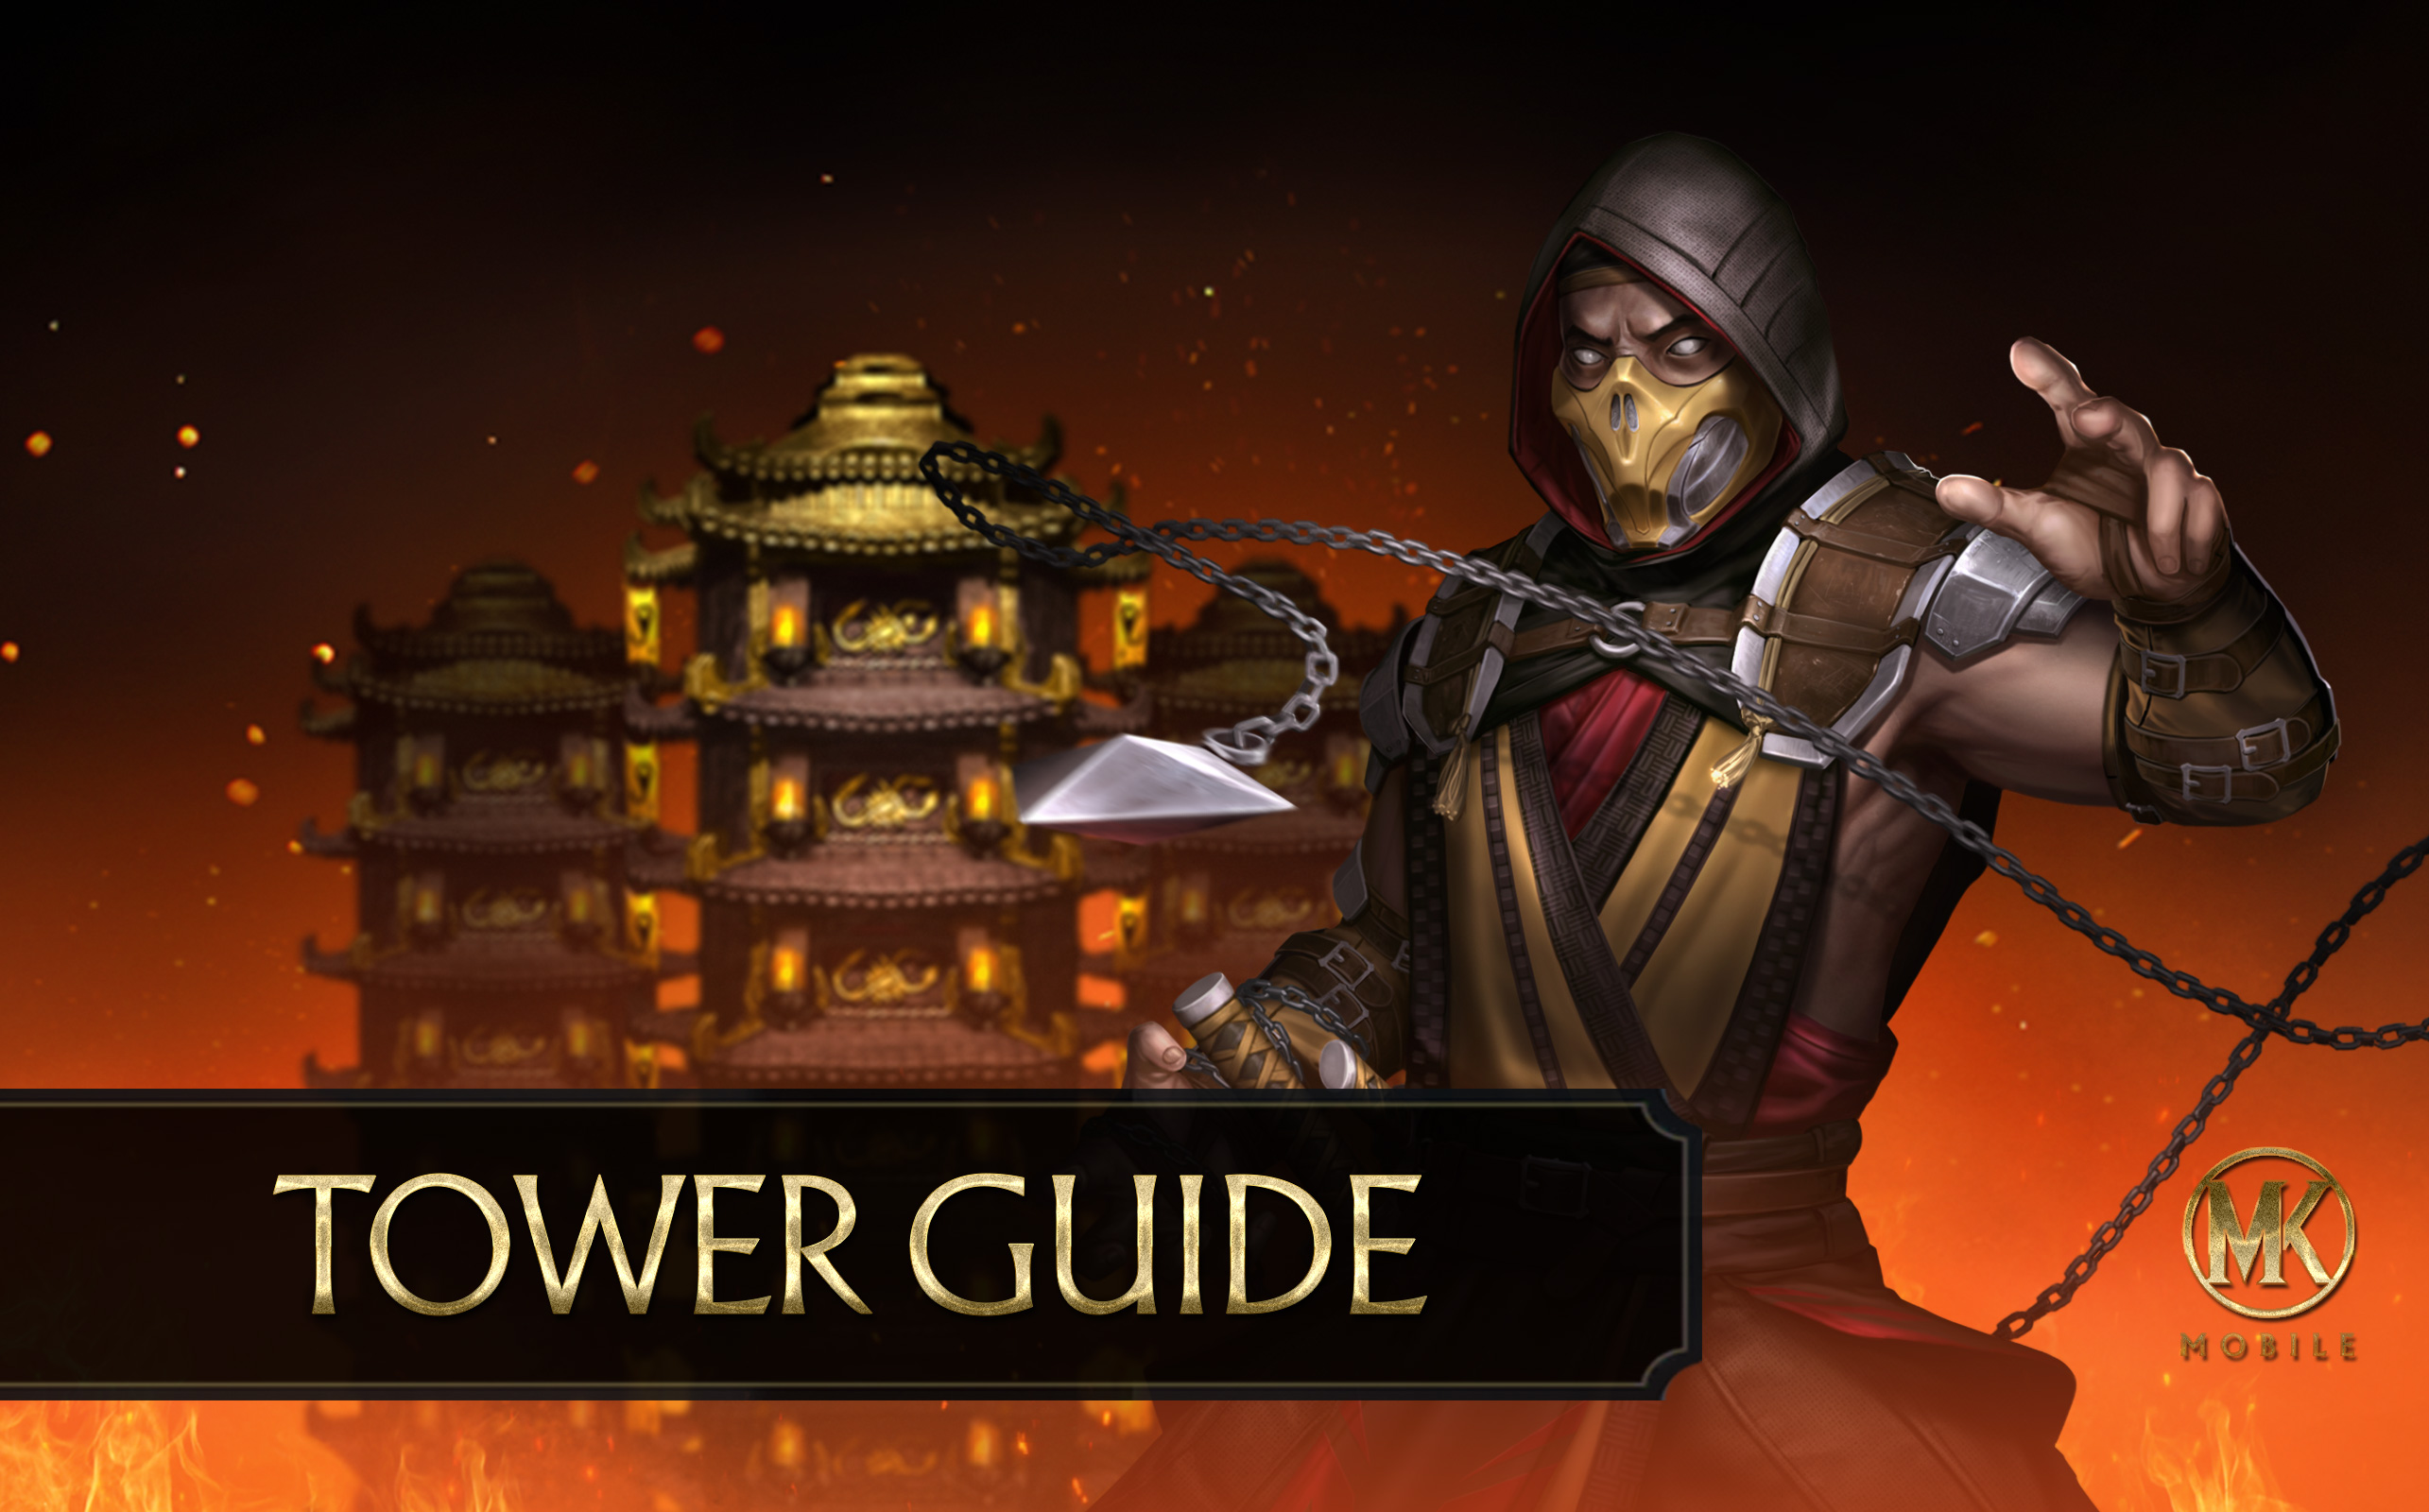 SR_TOWER_GUIDE.JPG